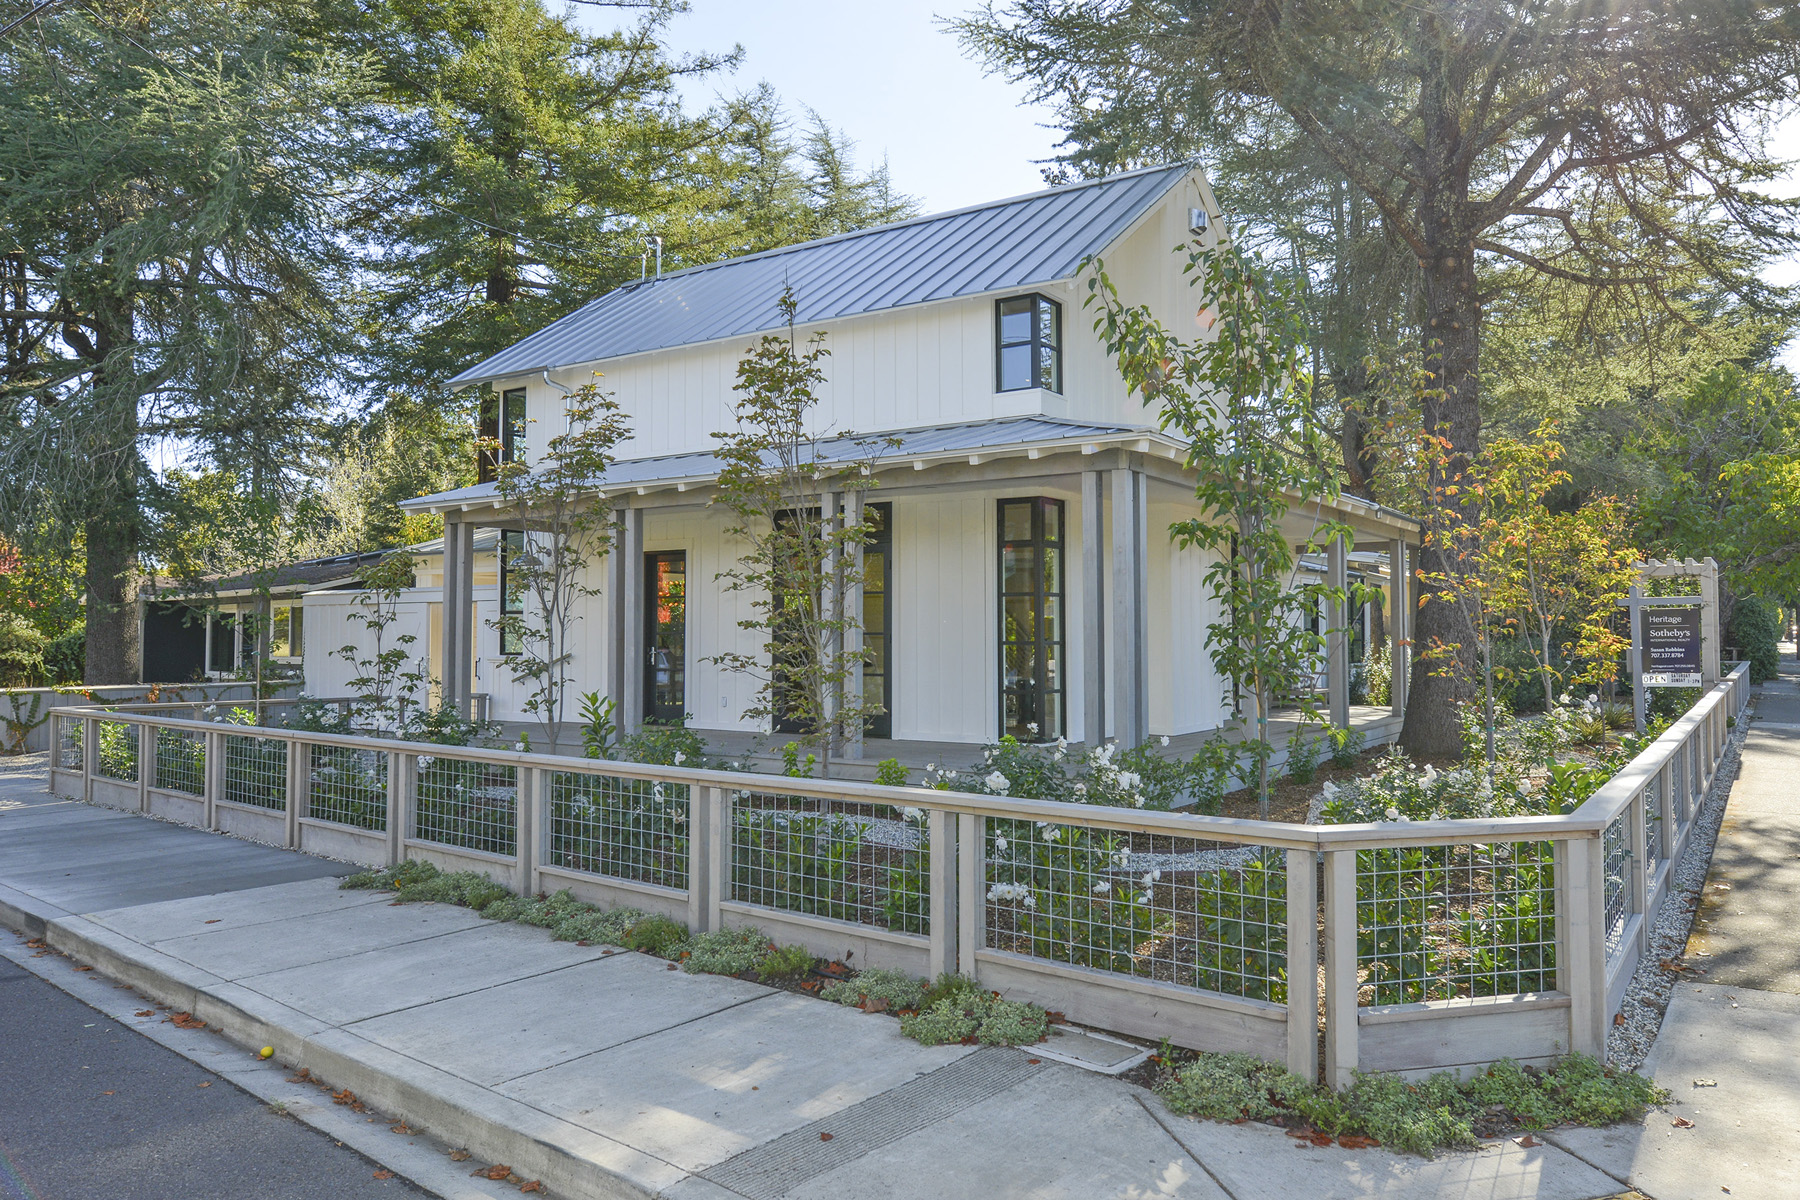 Property For Sale at 1611 Madrona Ave, St. Helena, CA 94574